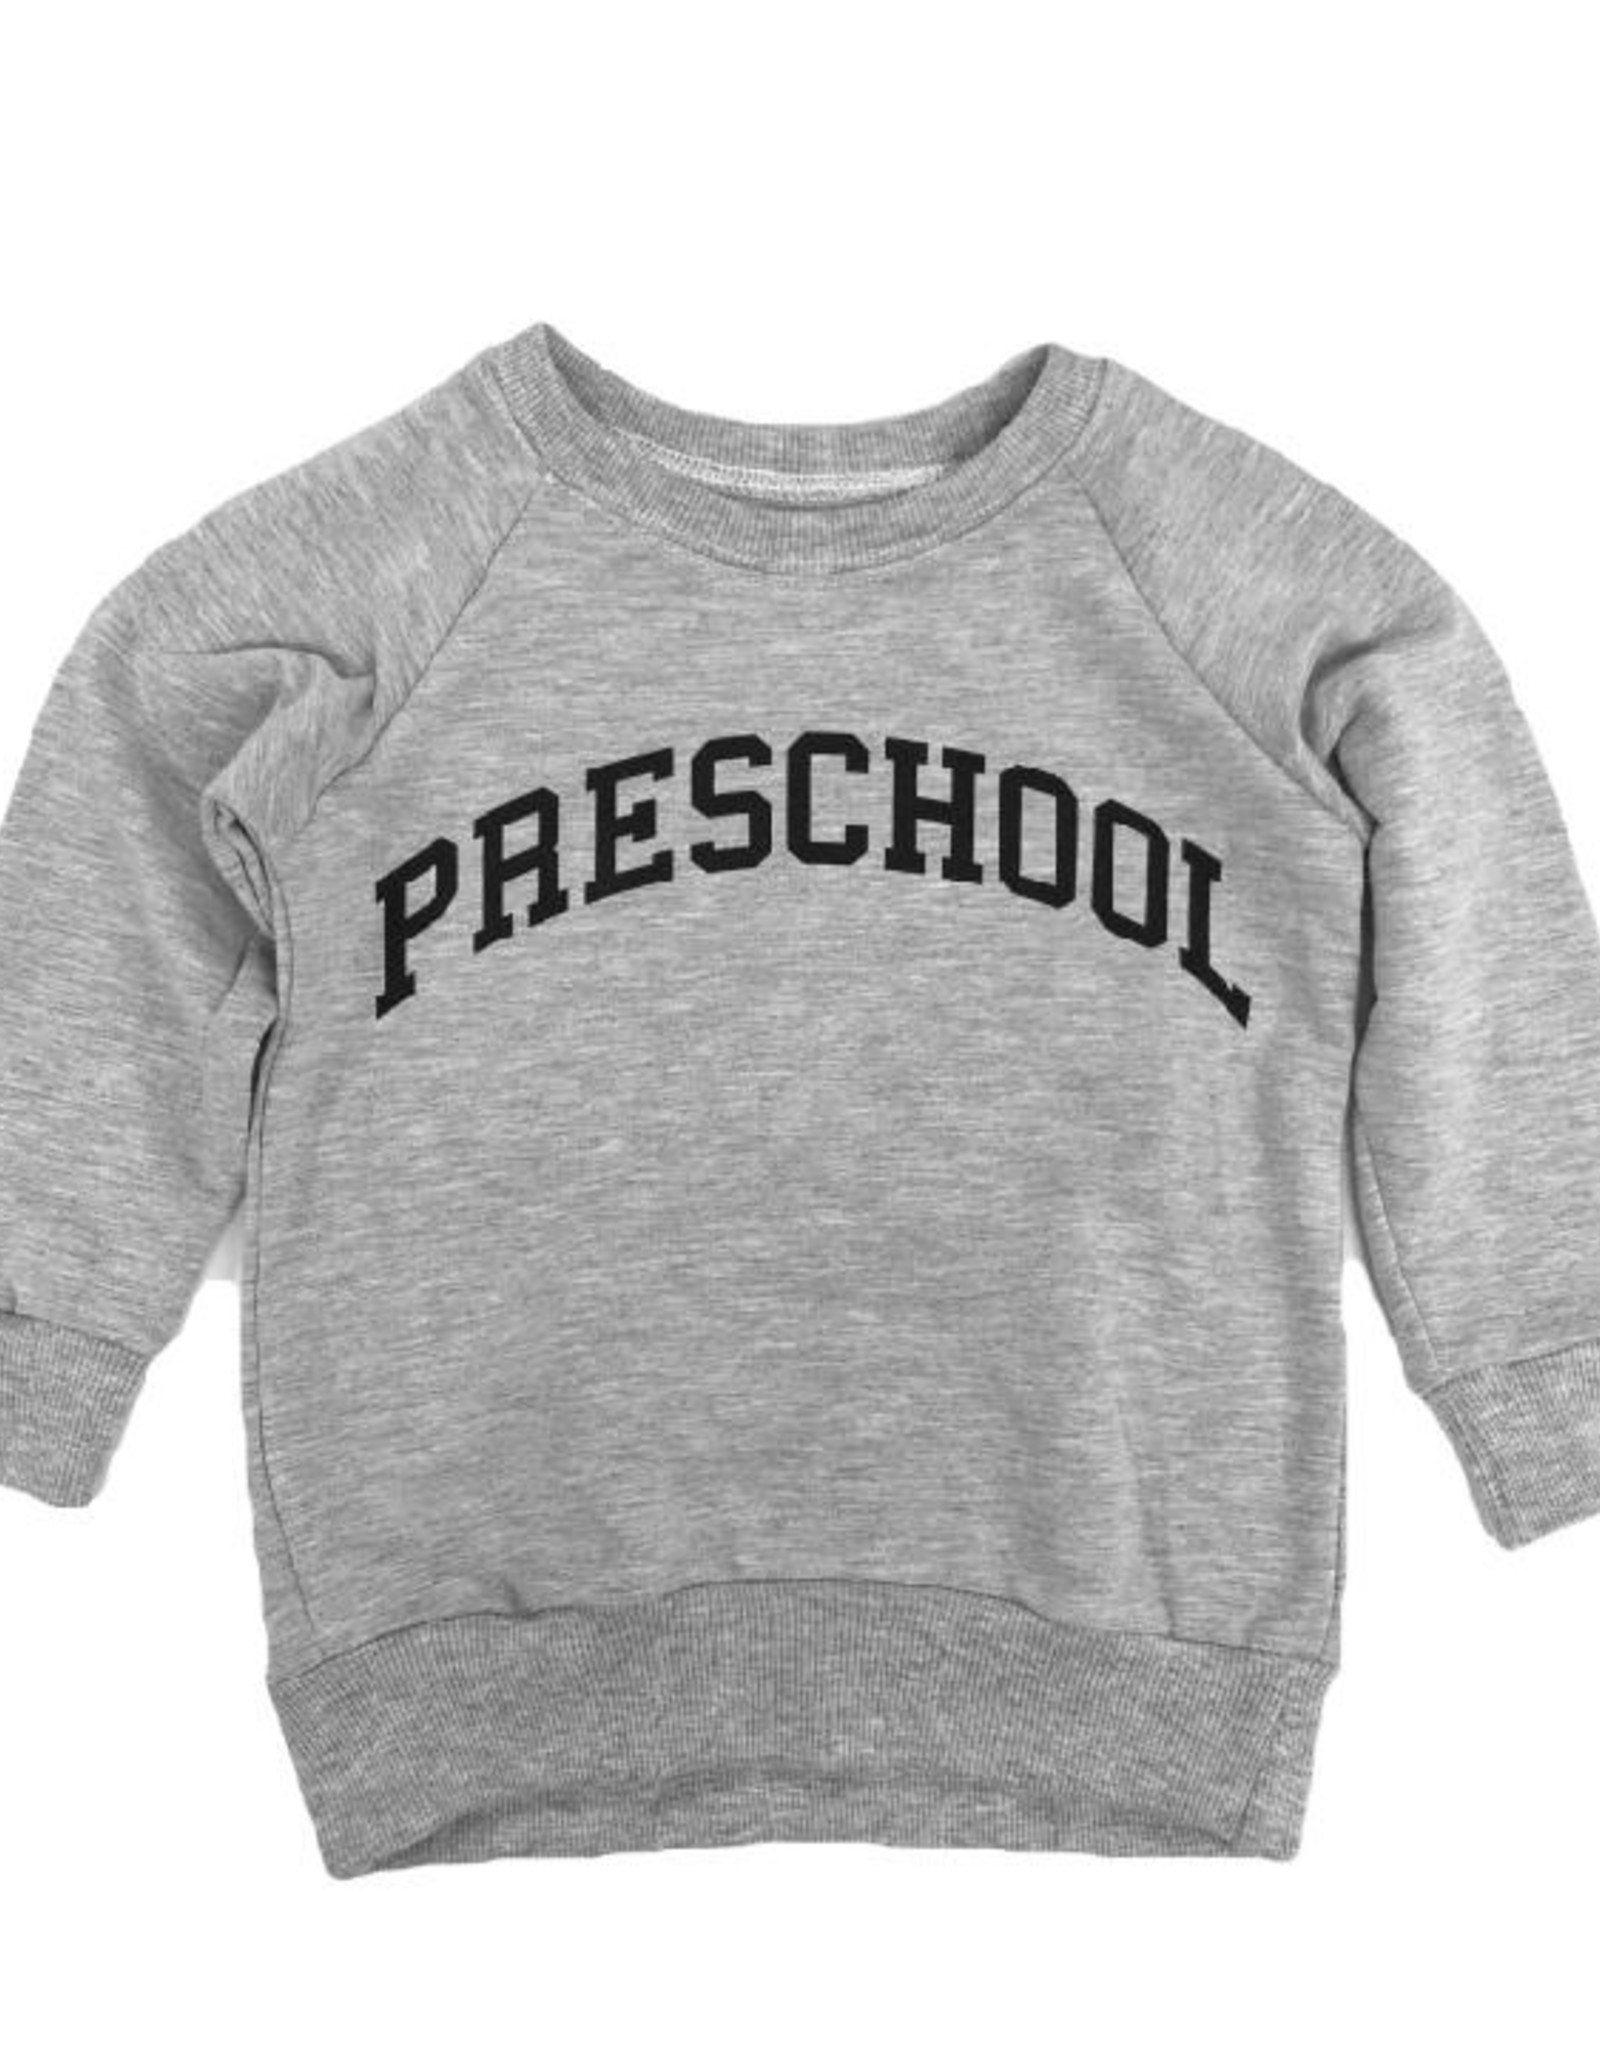 Portage & Main FA20 Preschool Raglan - Assorted Colours